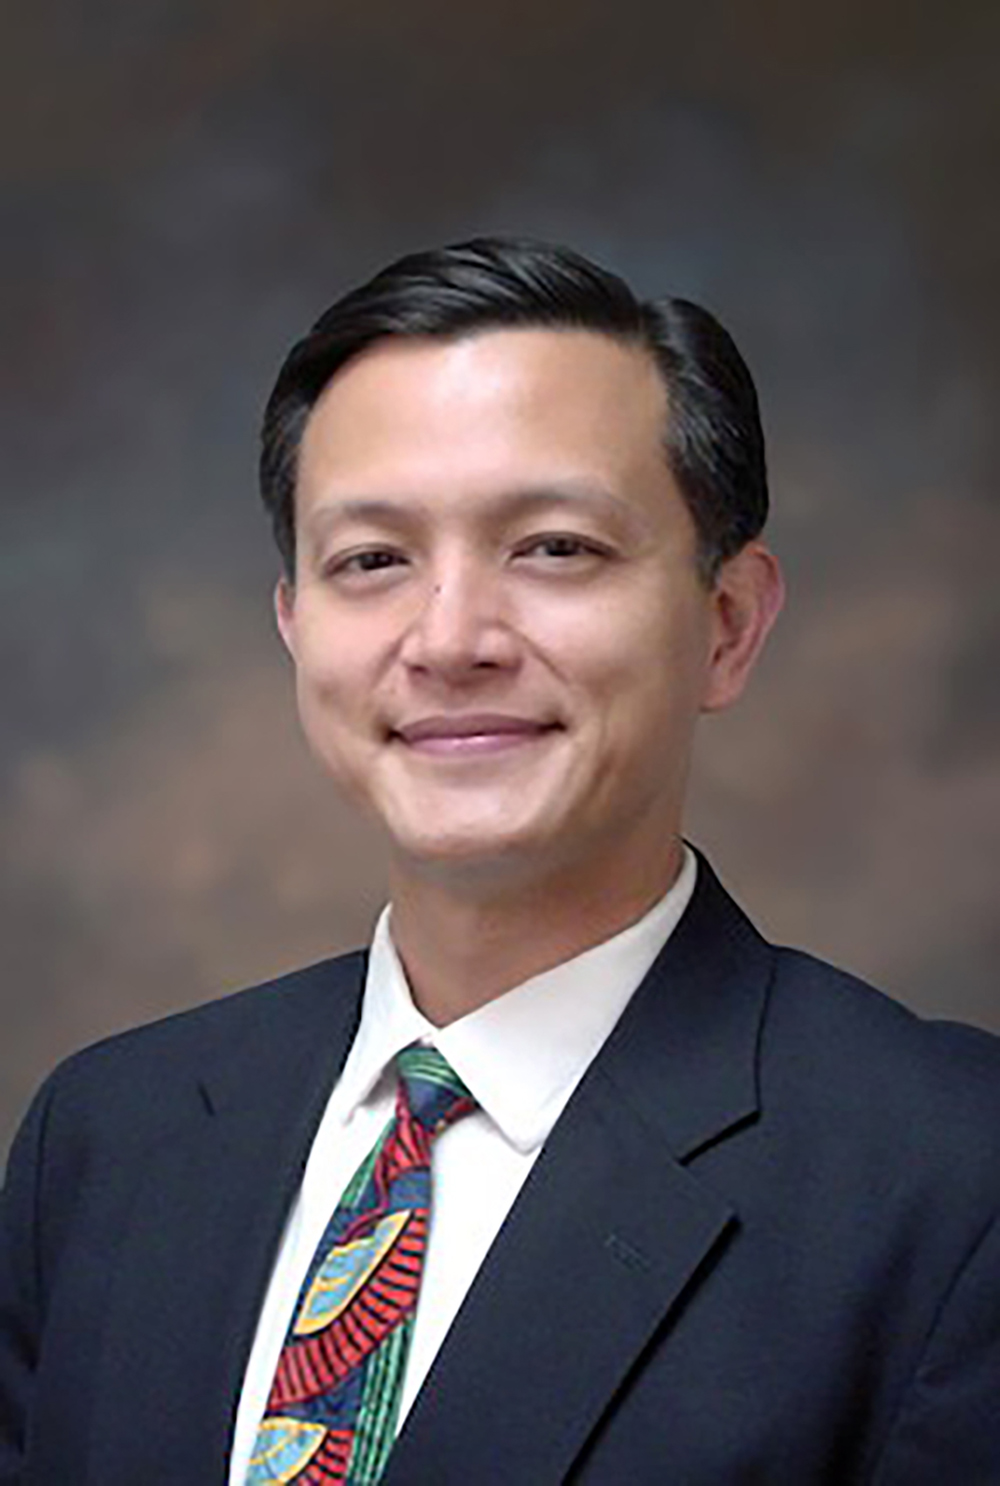 ►The Watson Clinic added Dr. Lazaro A. Diaz to its roster of physicians.